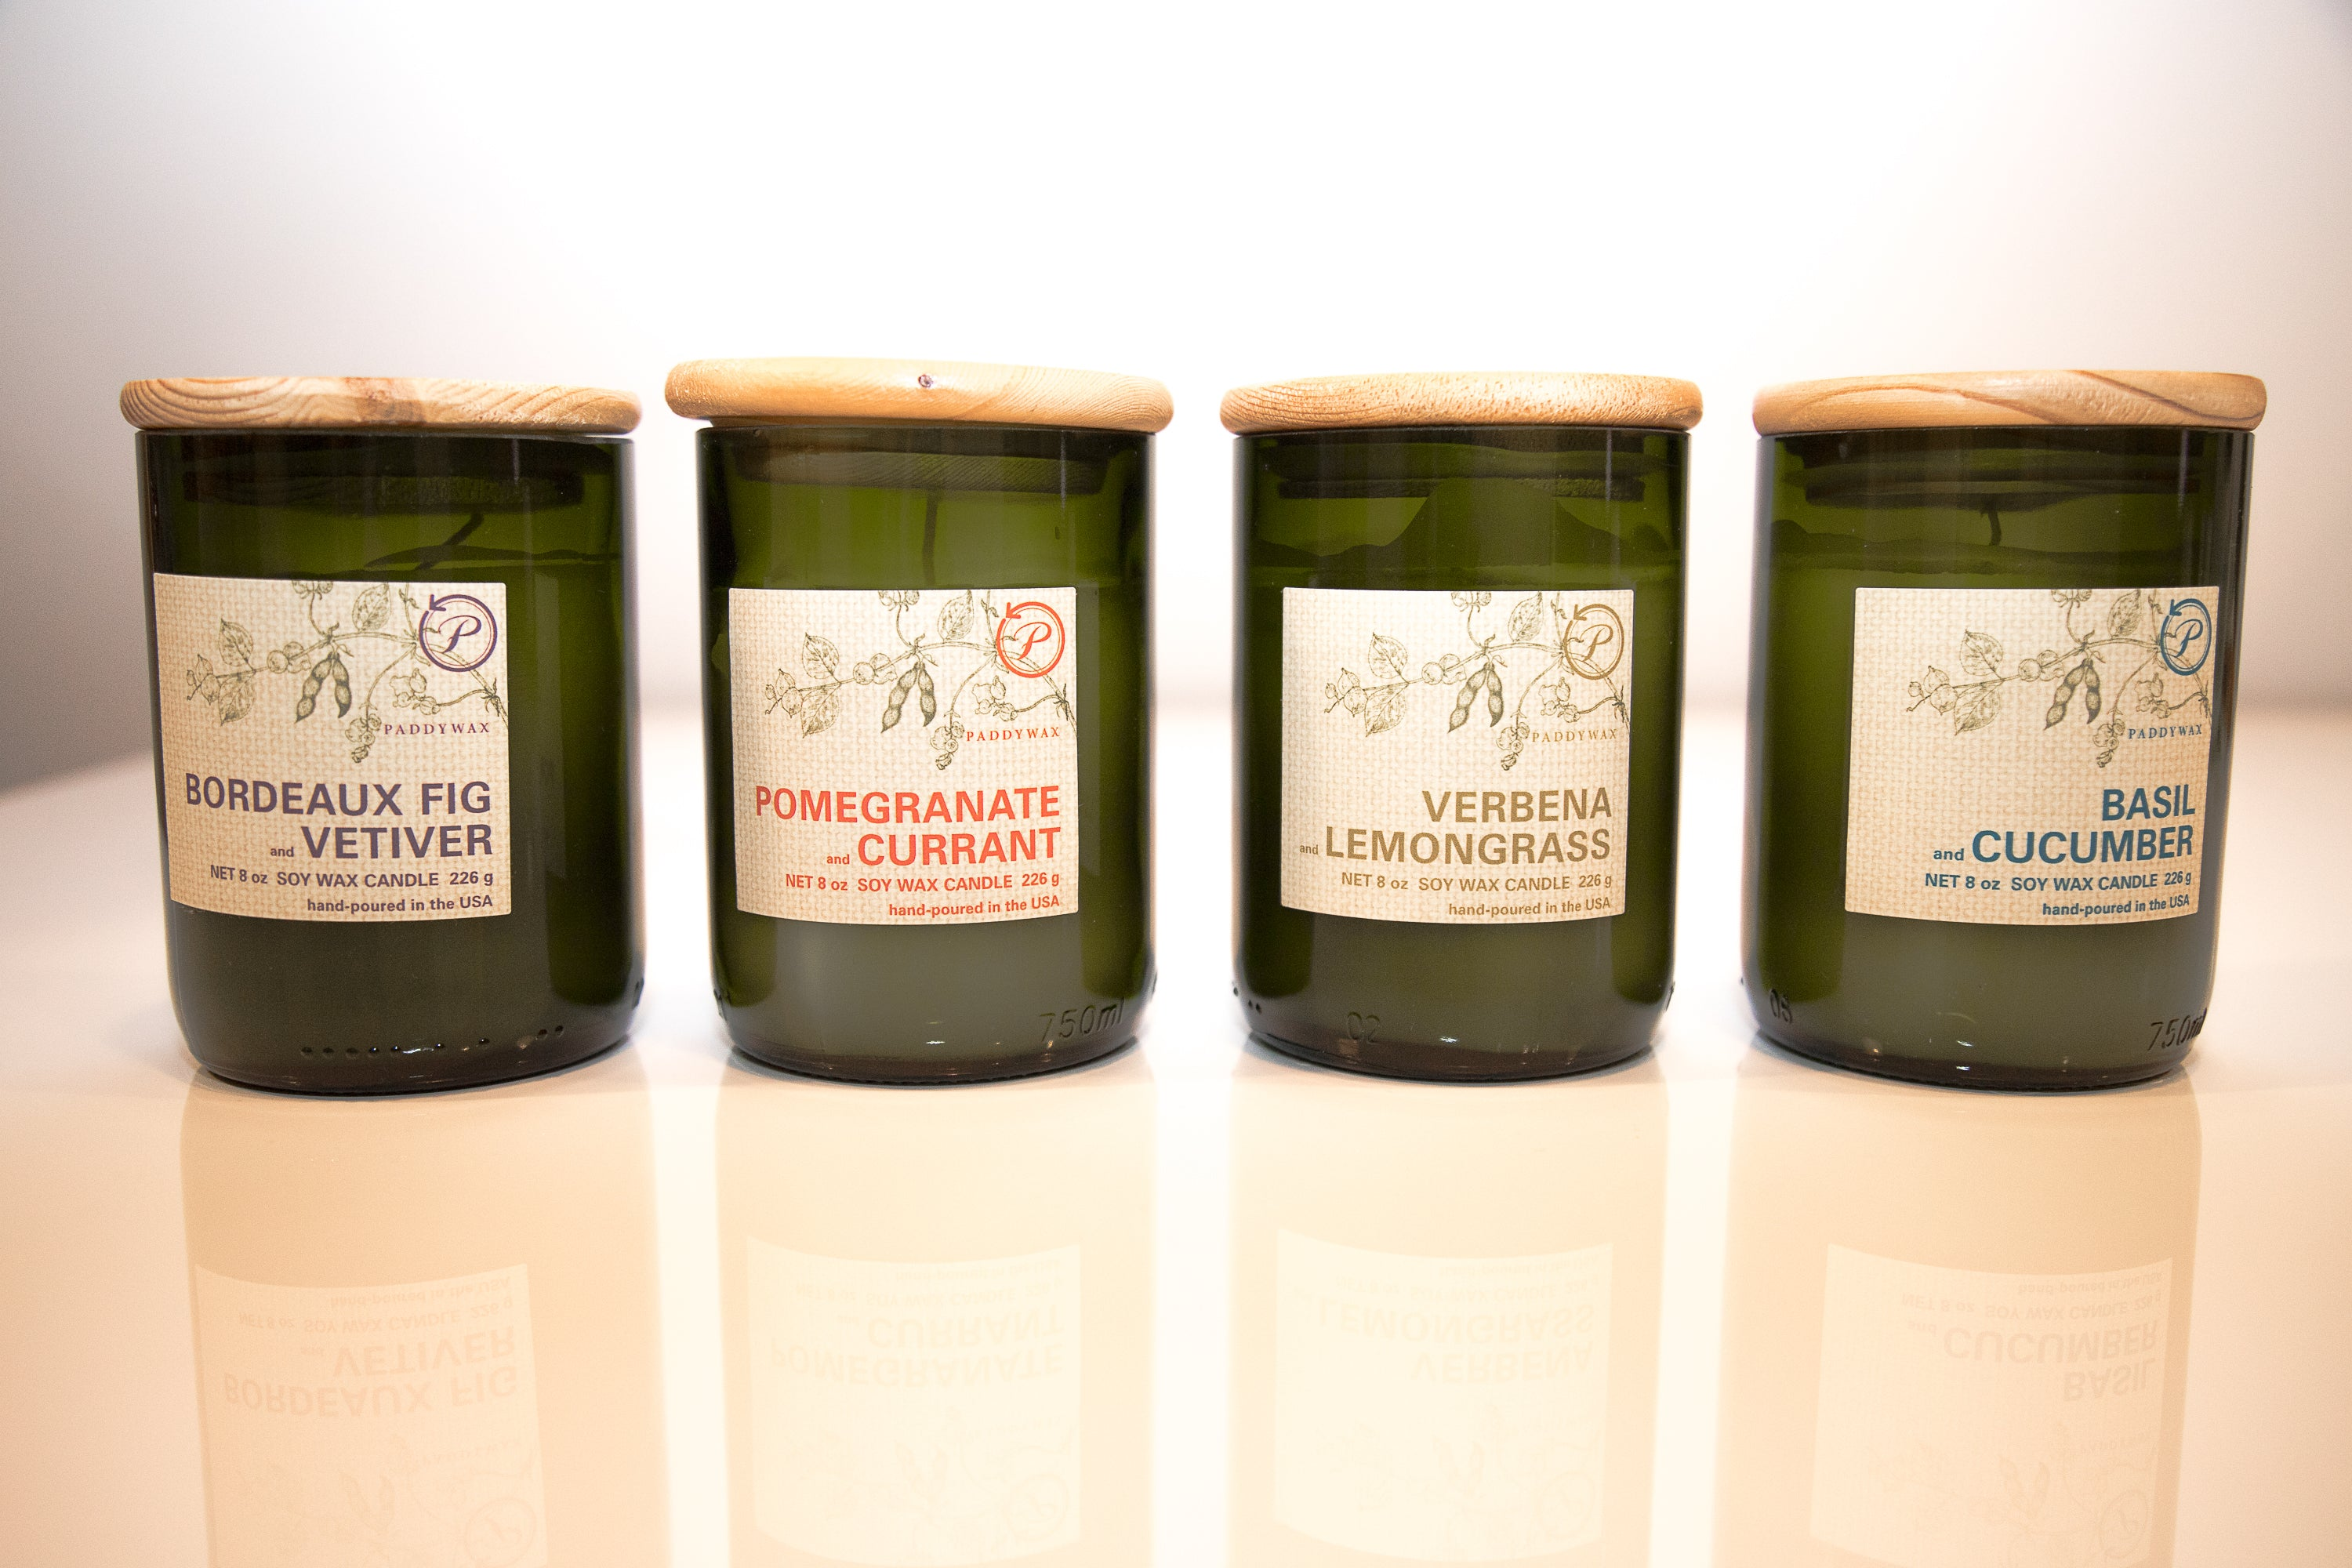 Bordeaux Fig And Vetiver Candle – David Robertson Design Studio